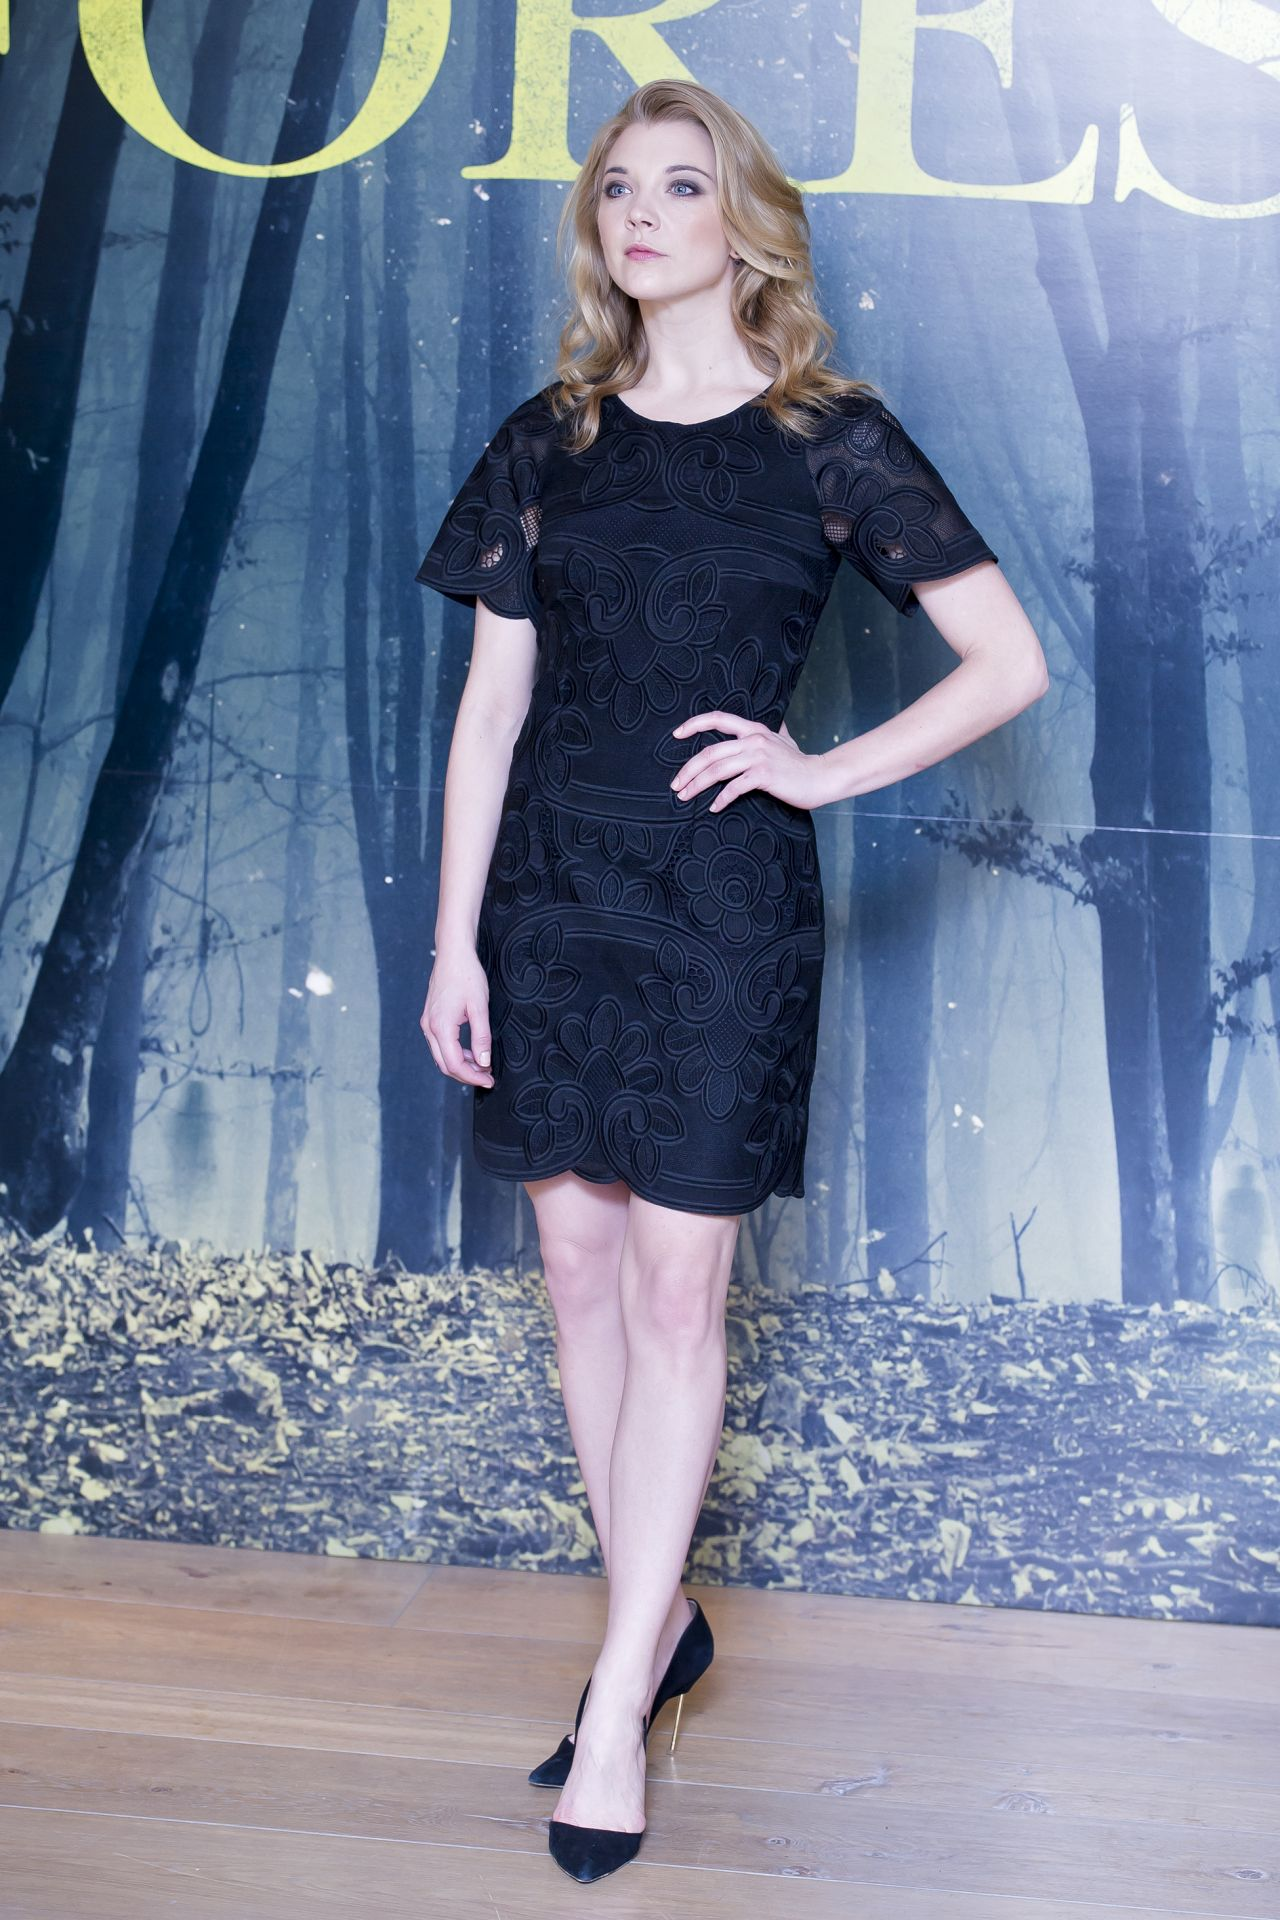 natalie-dormer-the-forest-photocall-in-london-uk-14